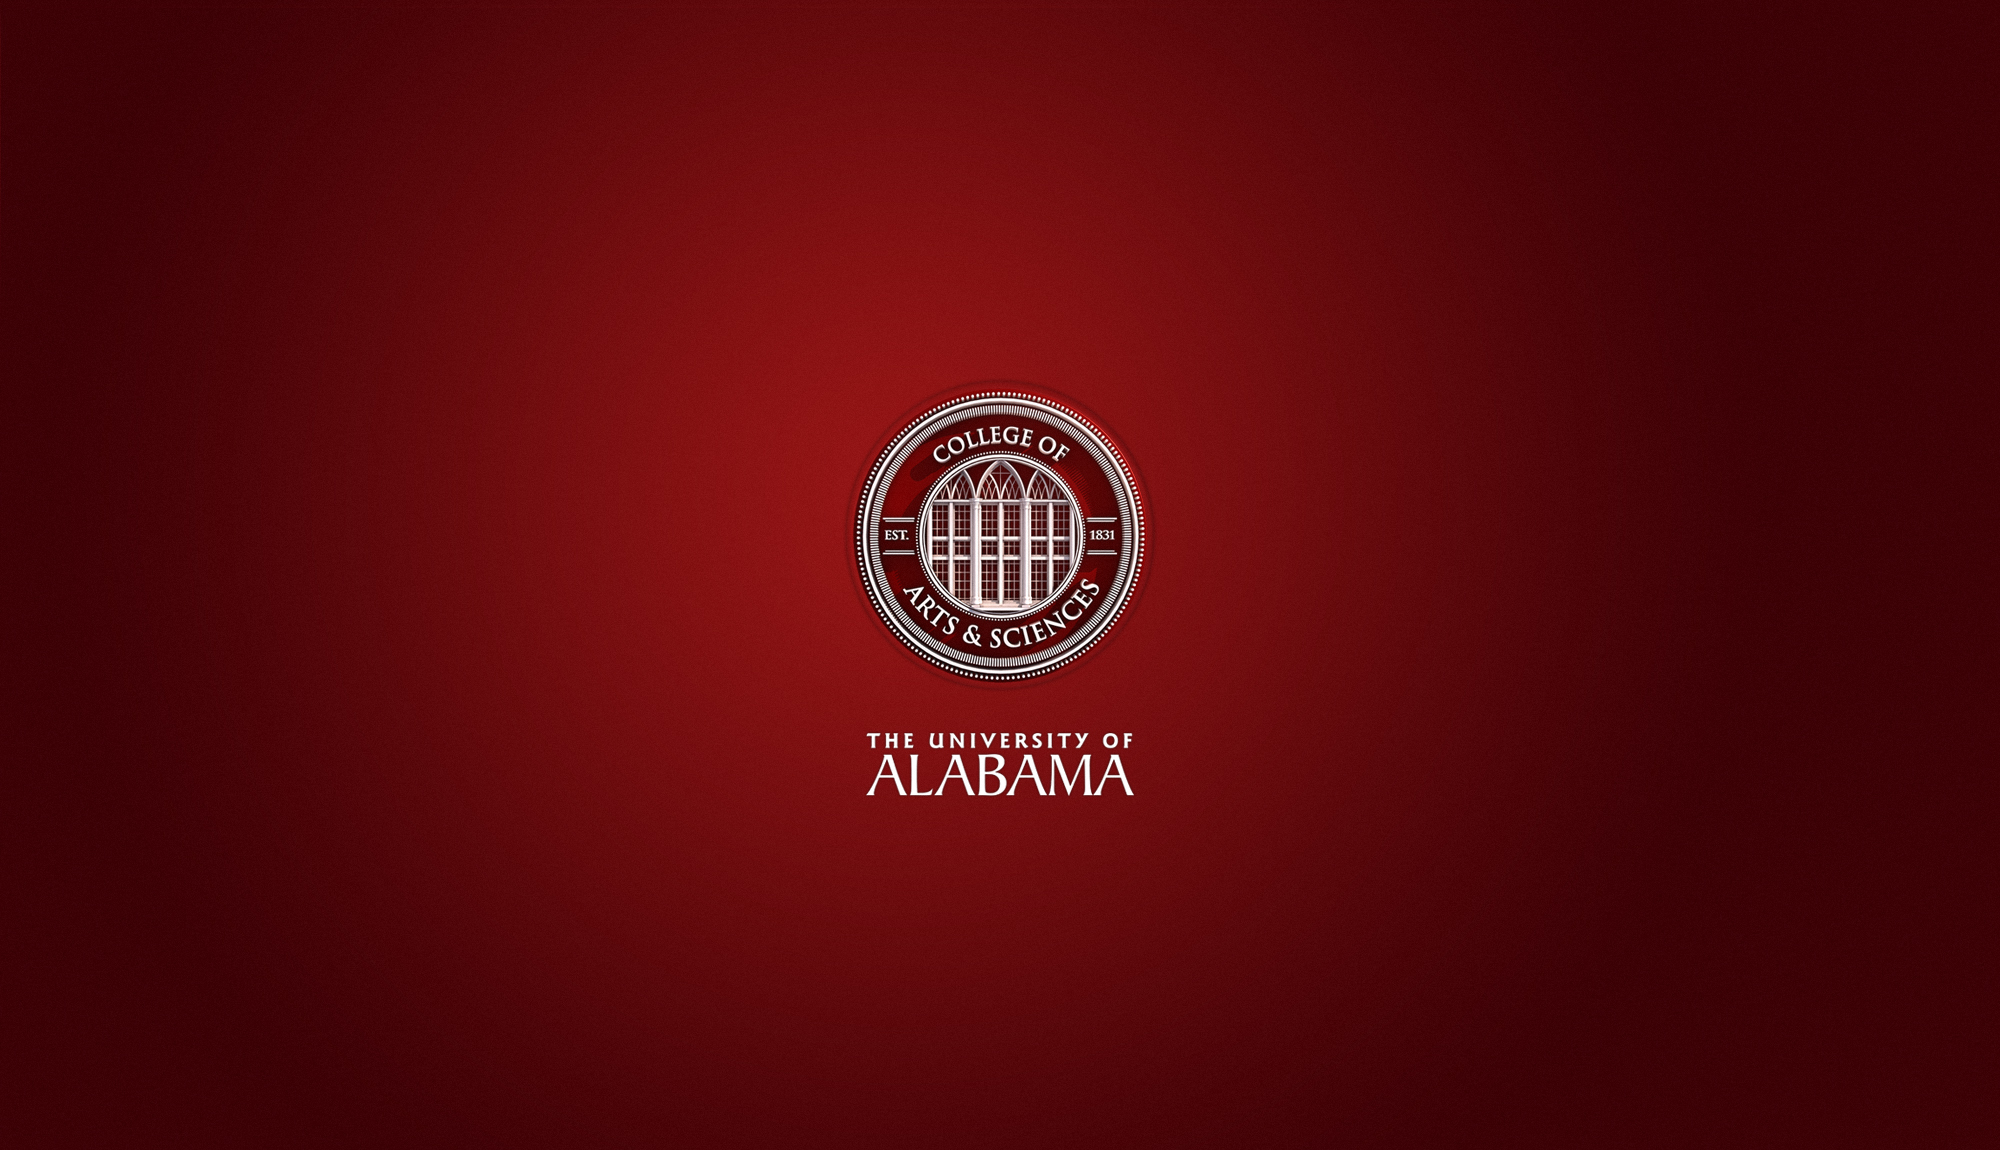 Alabama Wallpaper HD 2000x1150